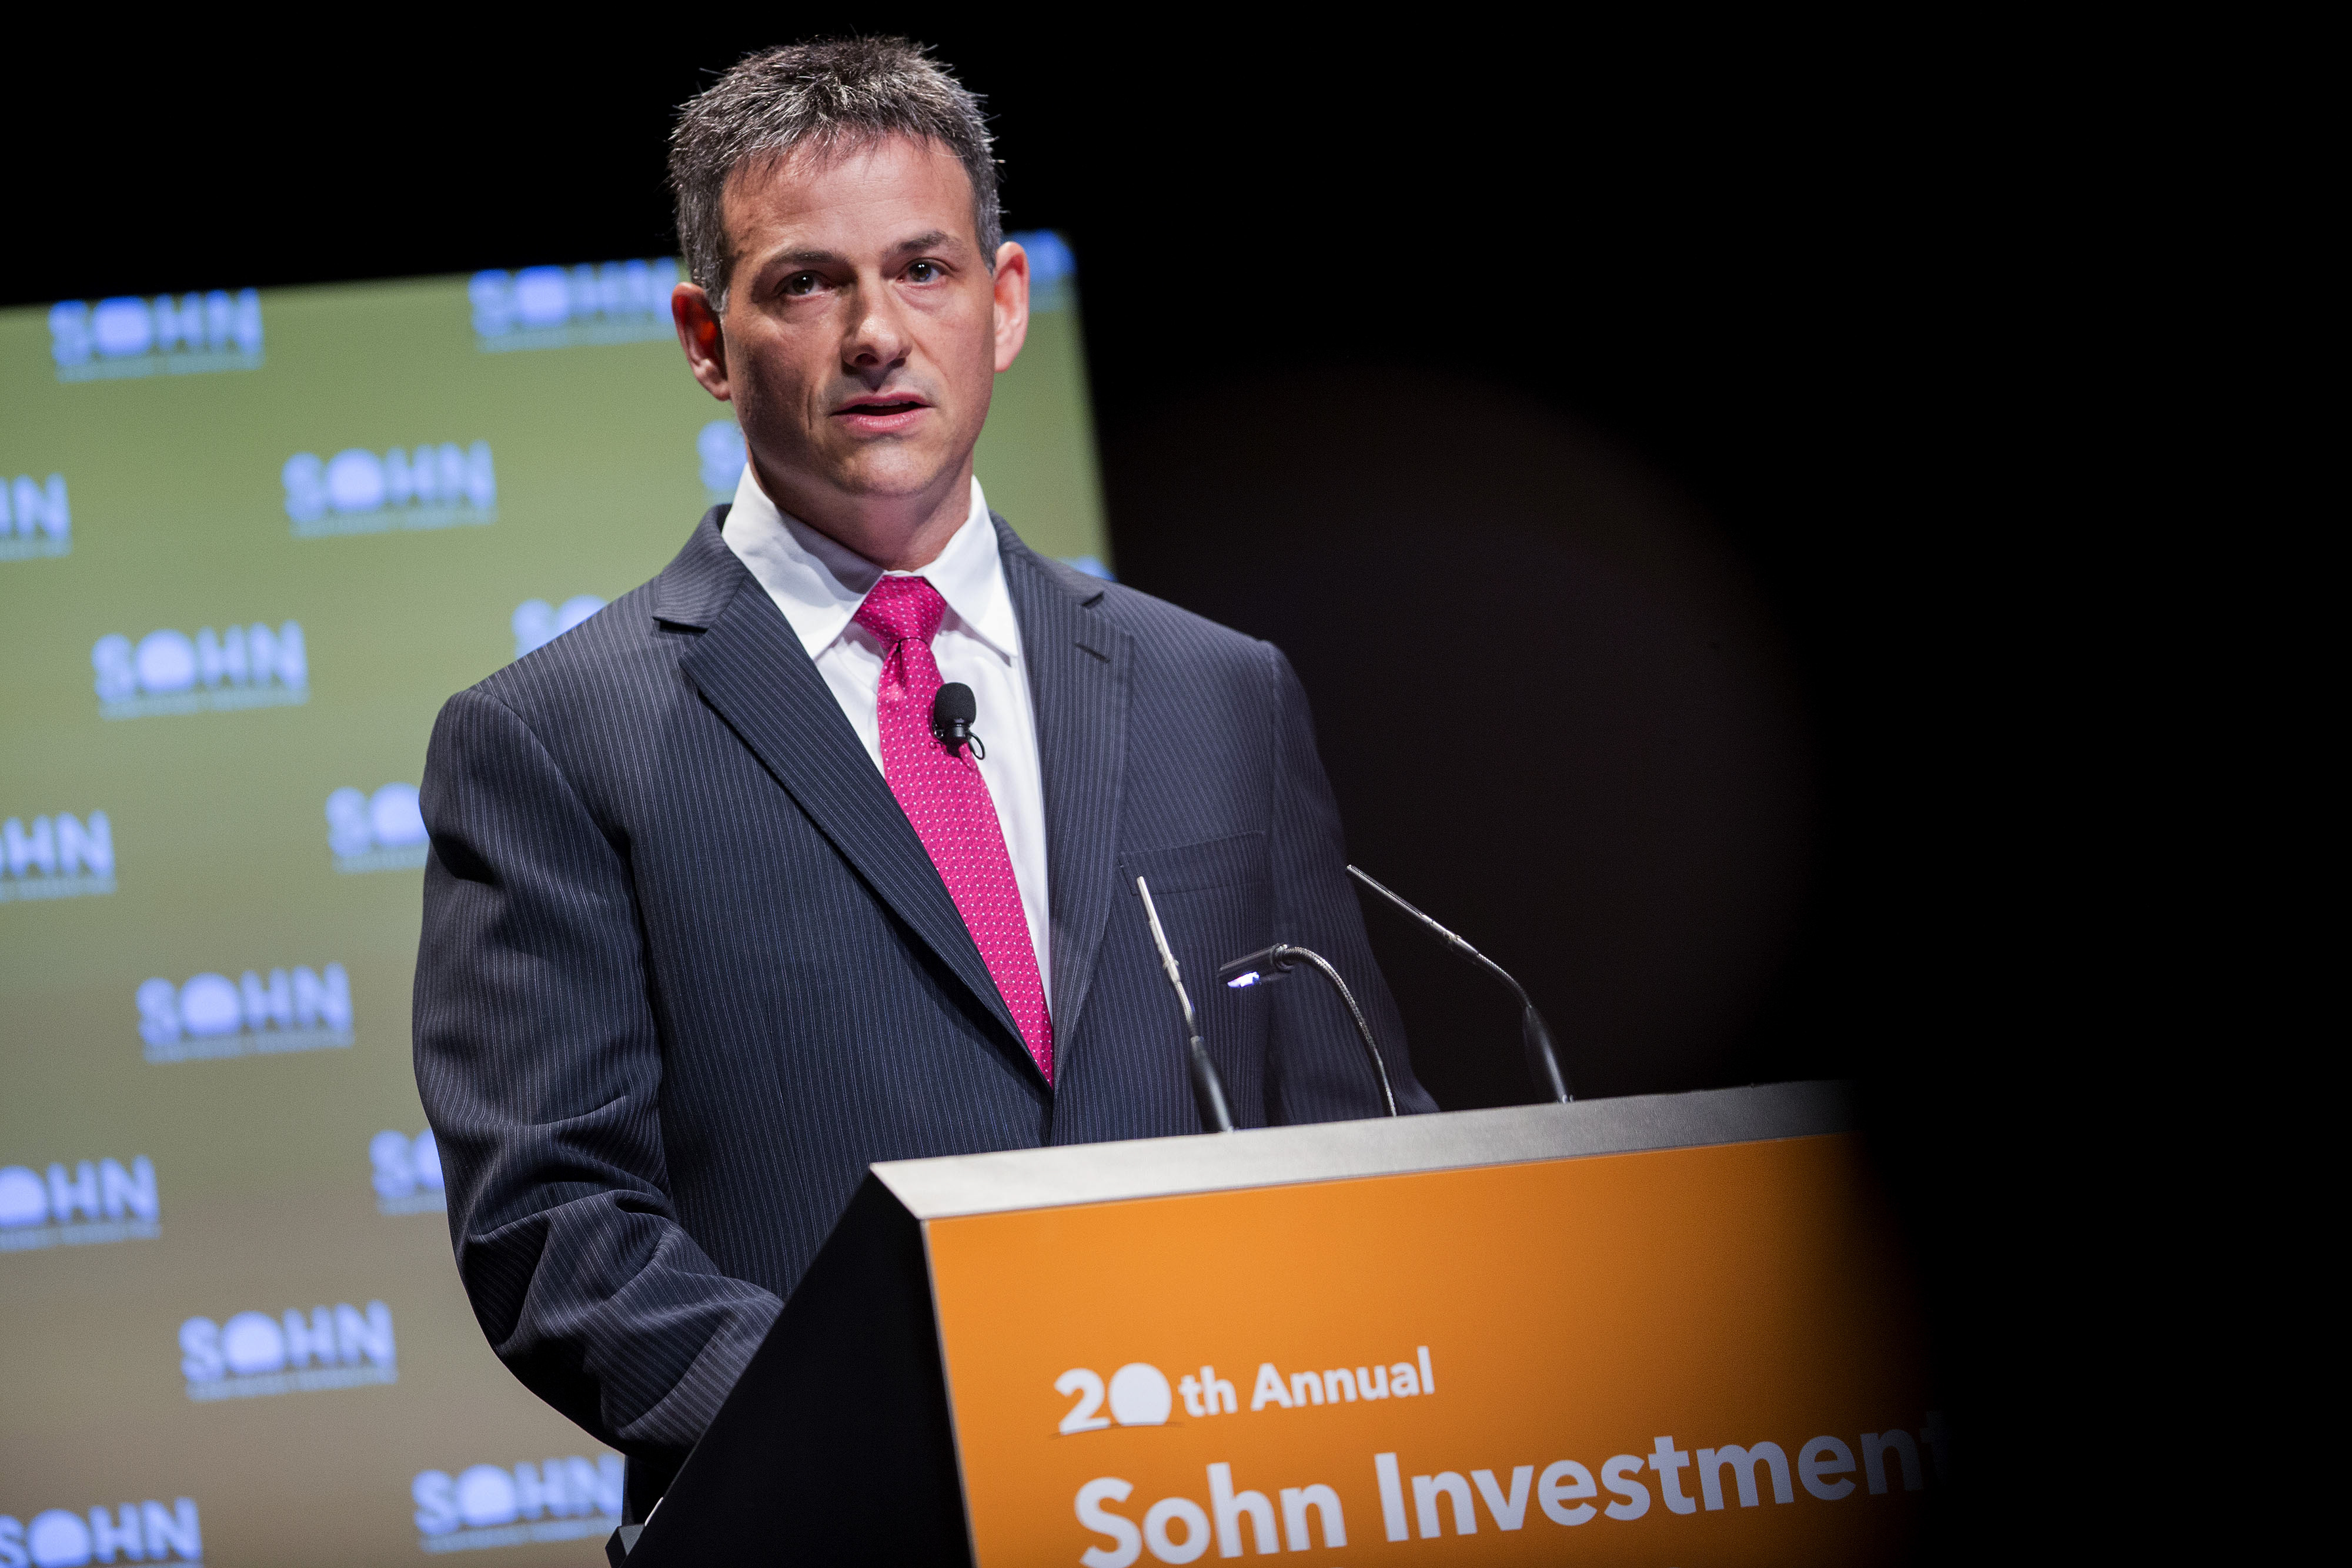 Key Speakers At The 20th Annual Sohn Investment Conference